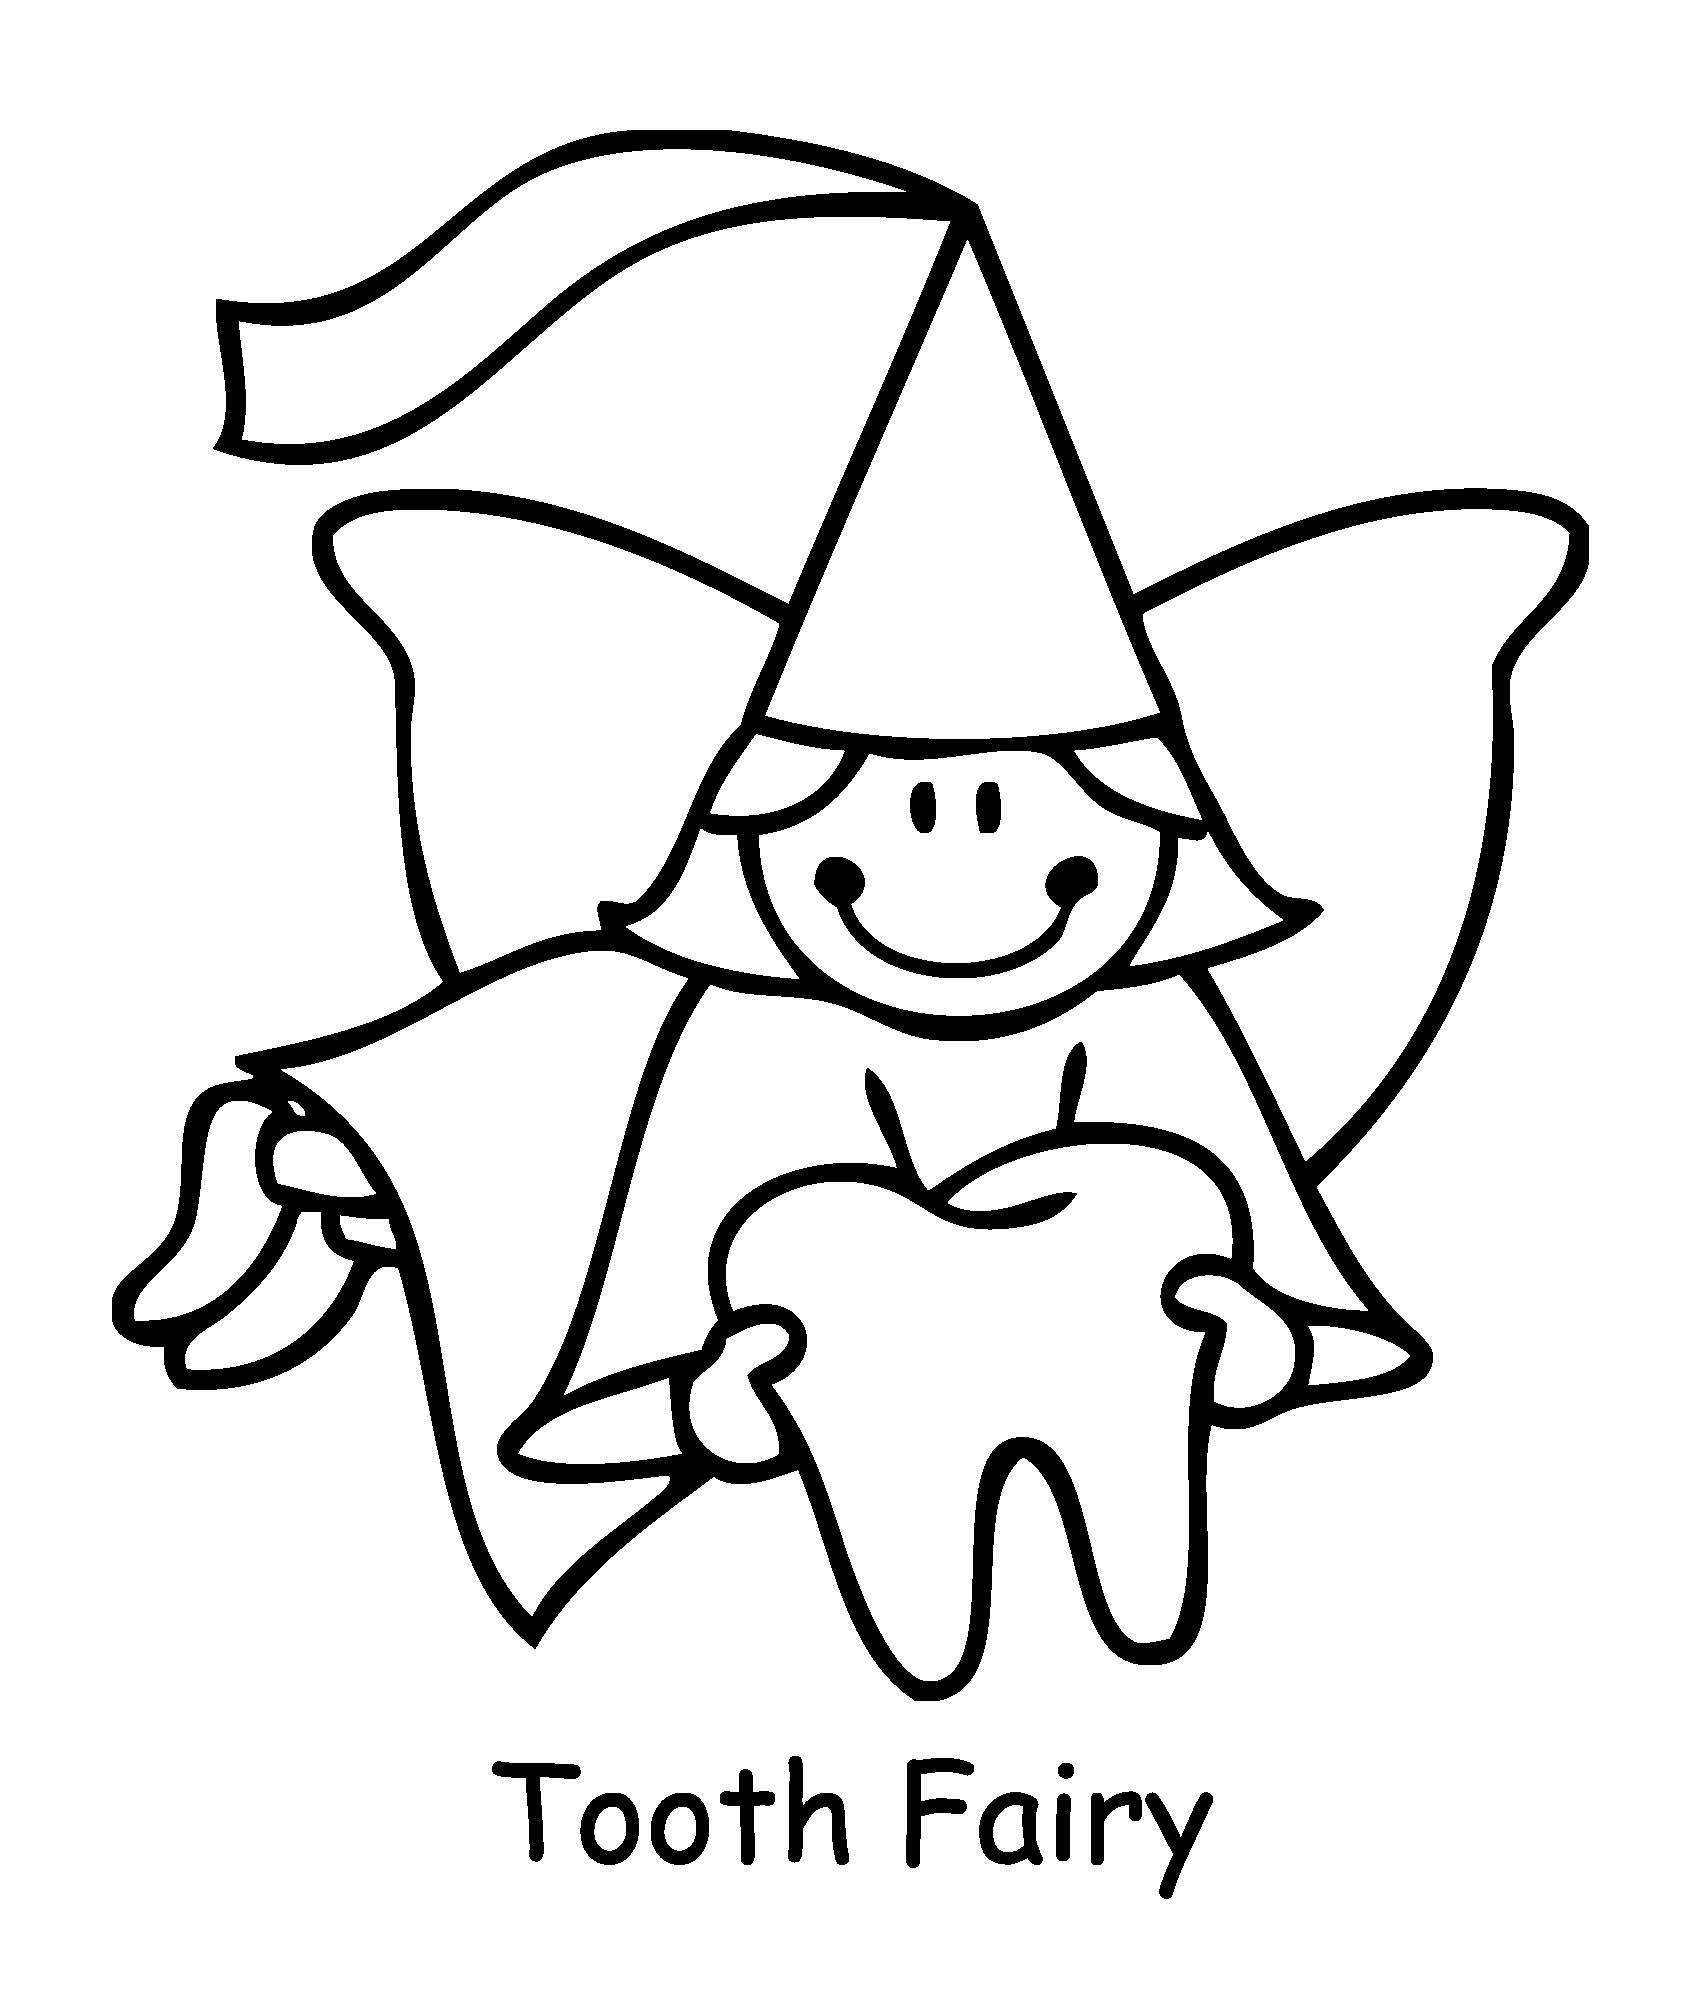 Teeth Coloring Pages Gallery 16p - To print for your project